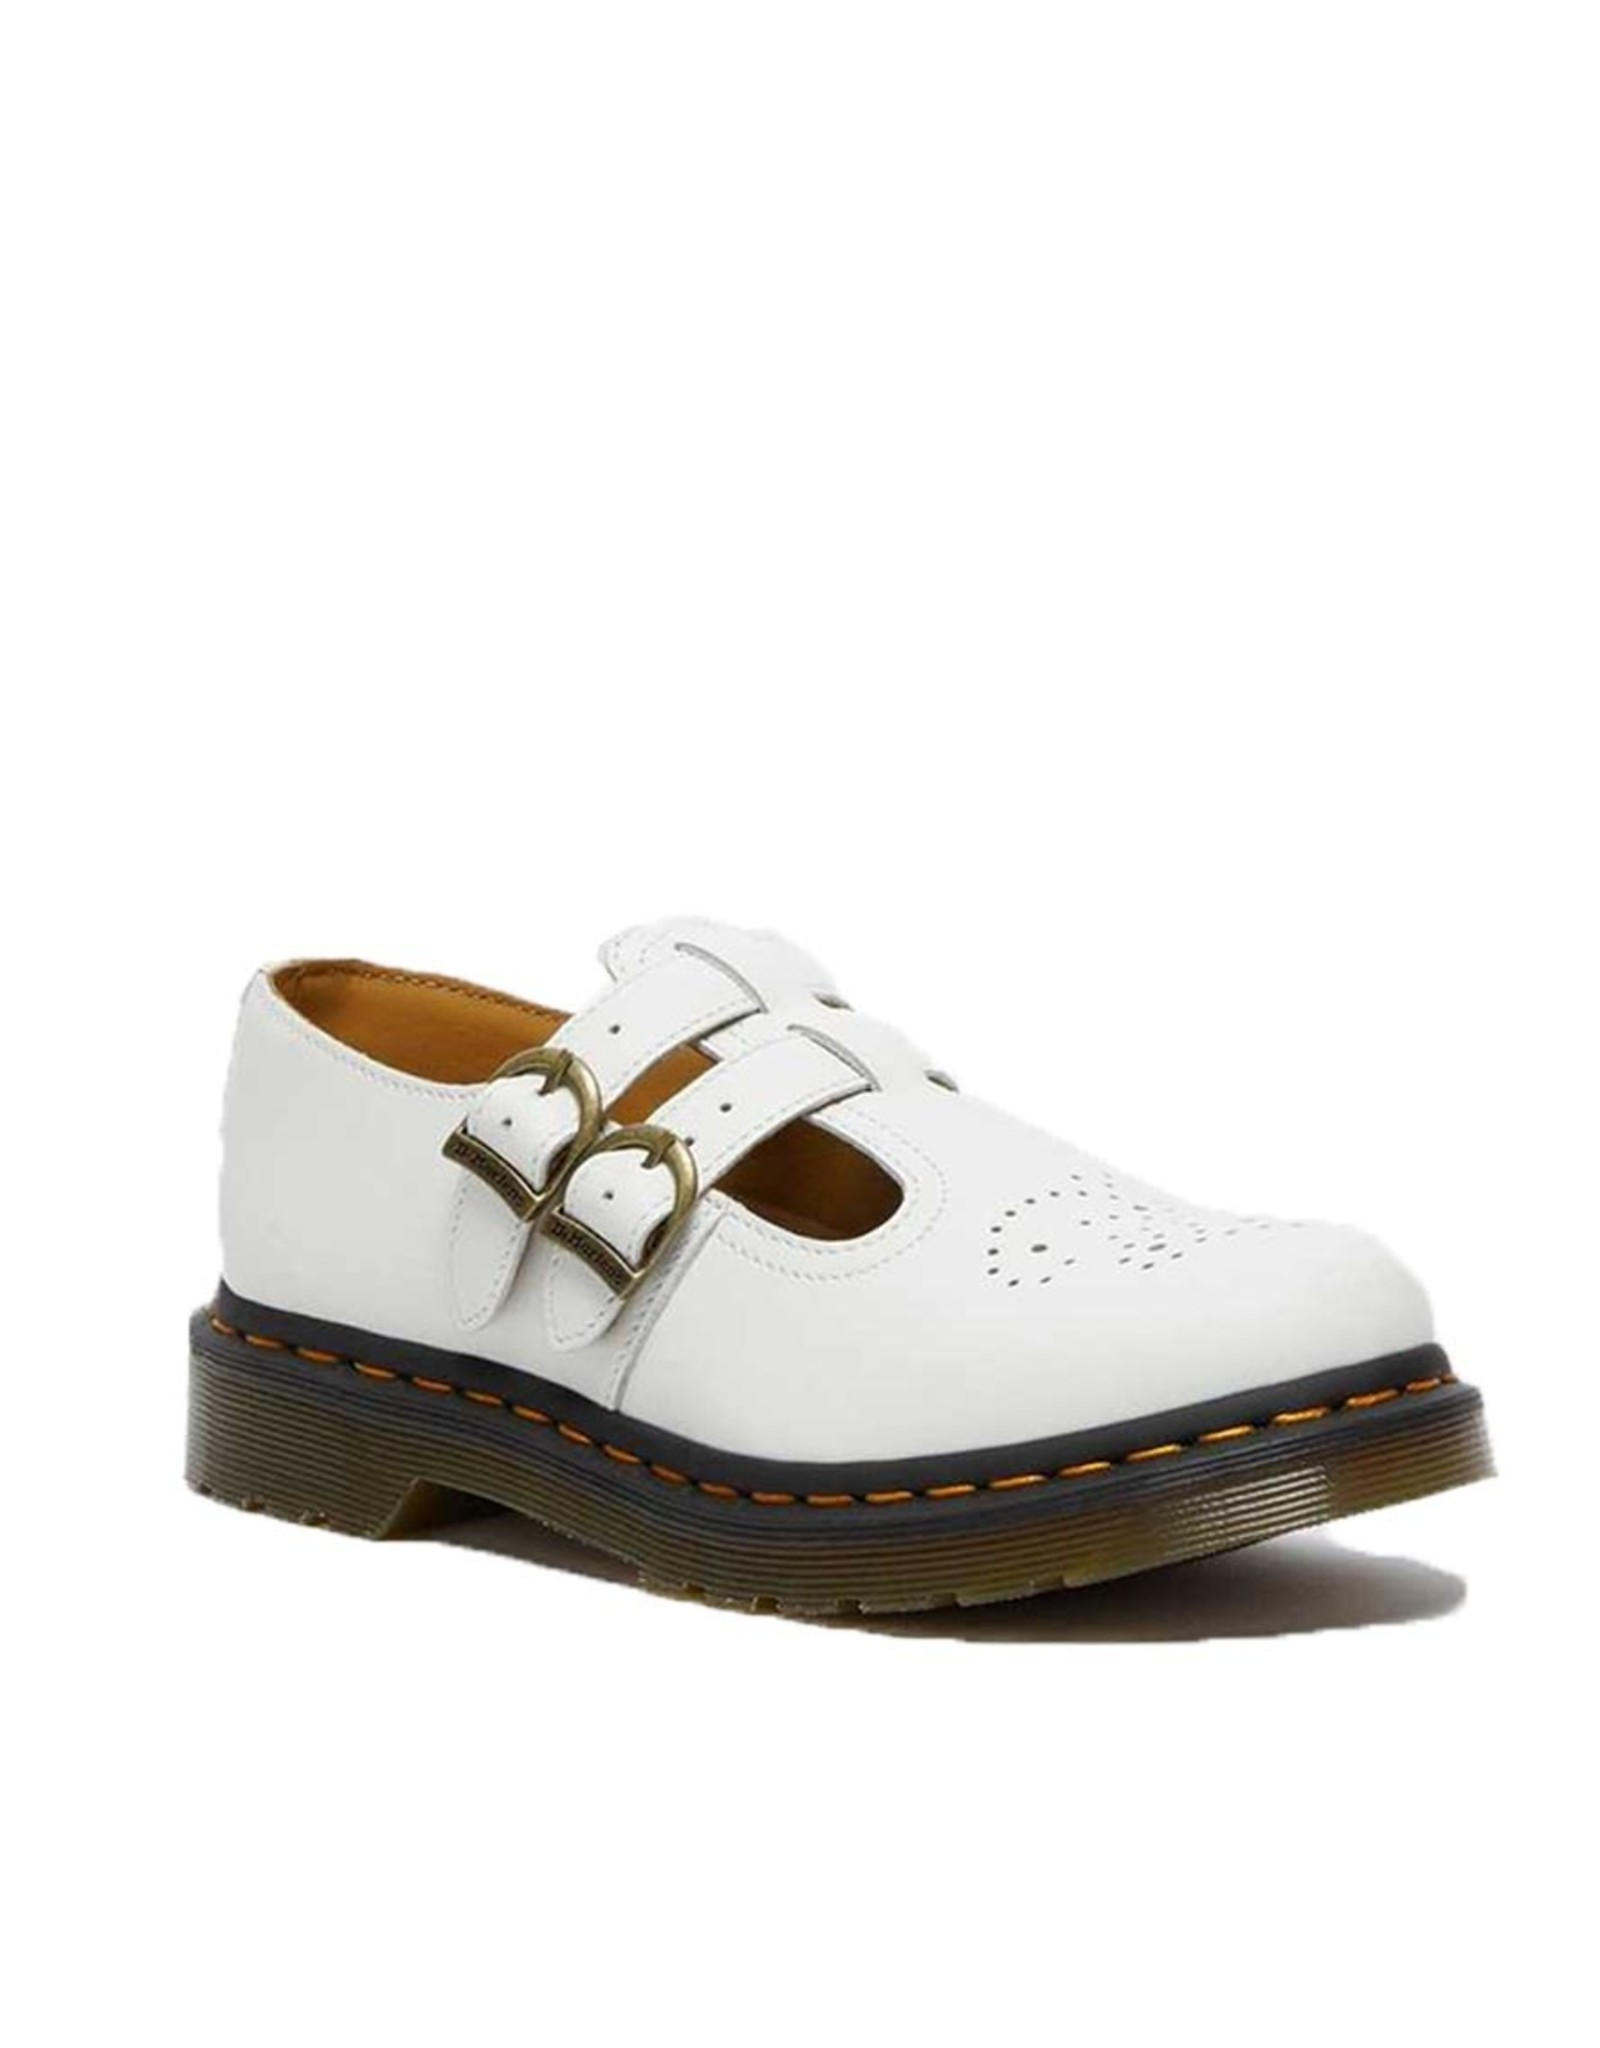 DR. MARTENS 8065 MARY JANE WHITE SMOOTH M92W-R26563100